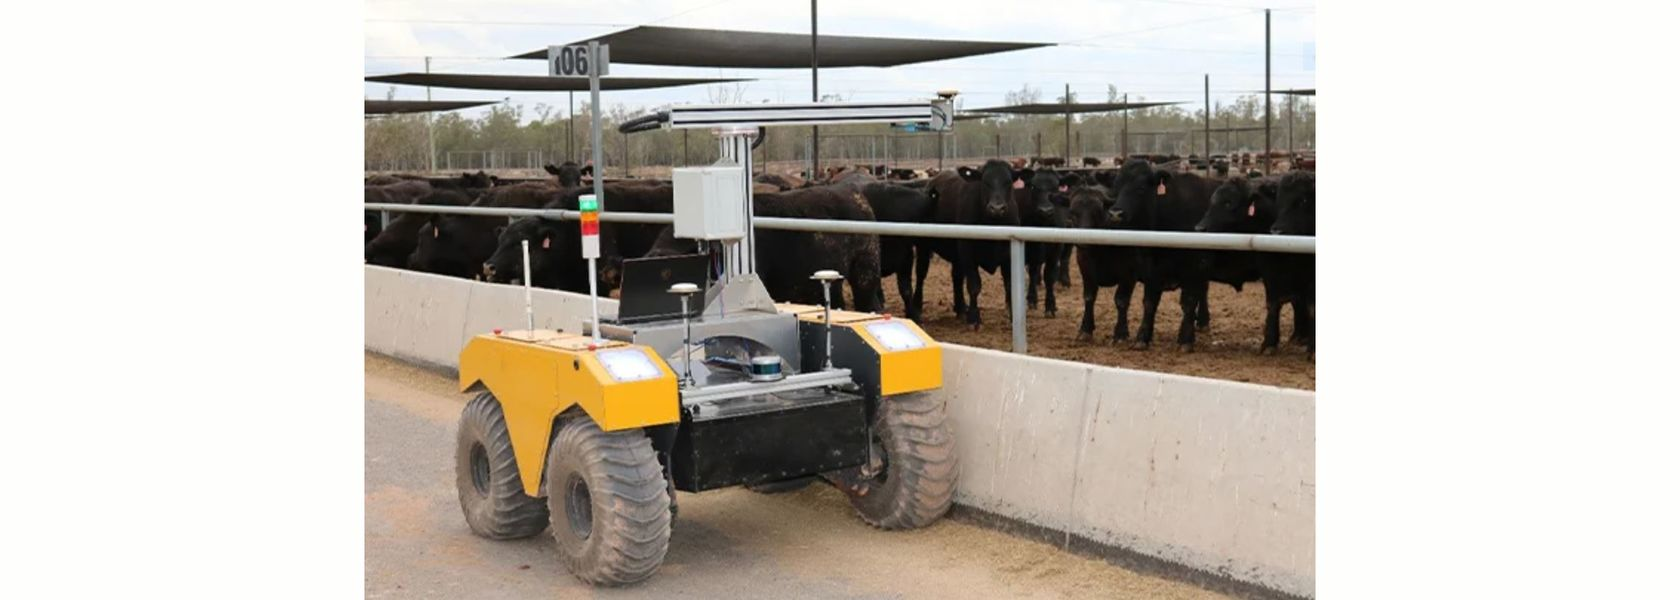 Robot doing the rounds in a feed lot